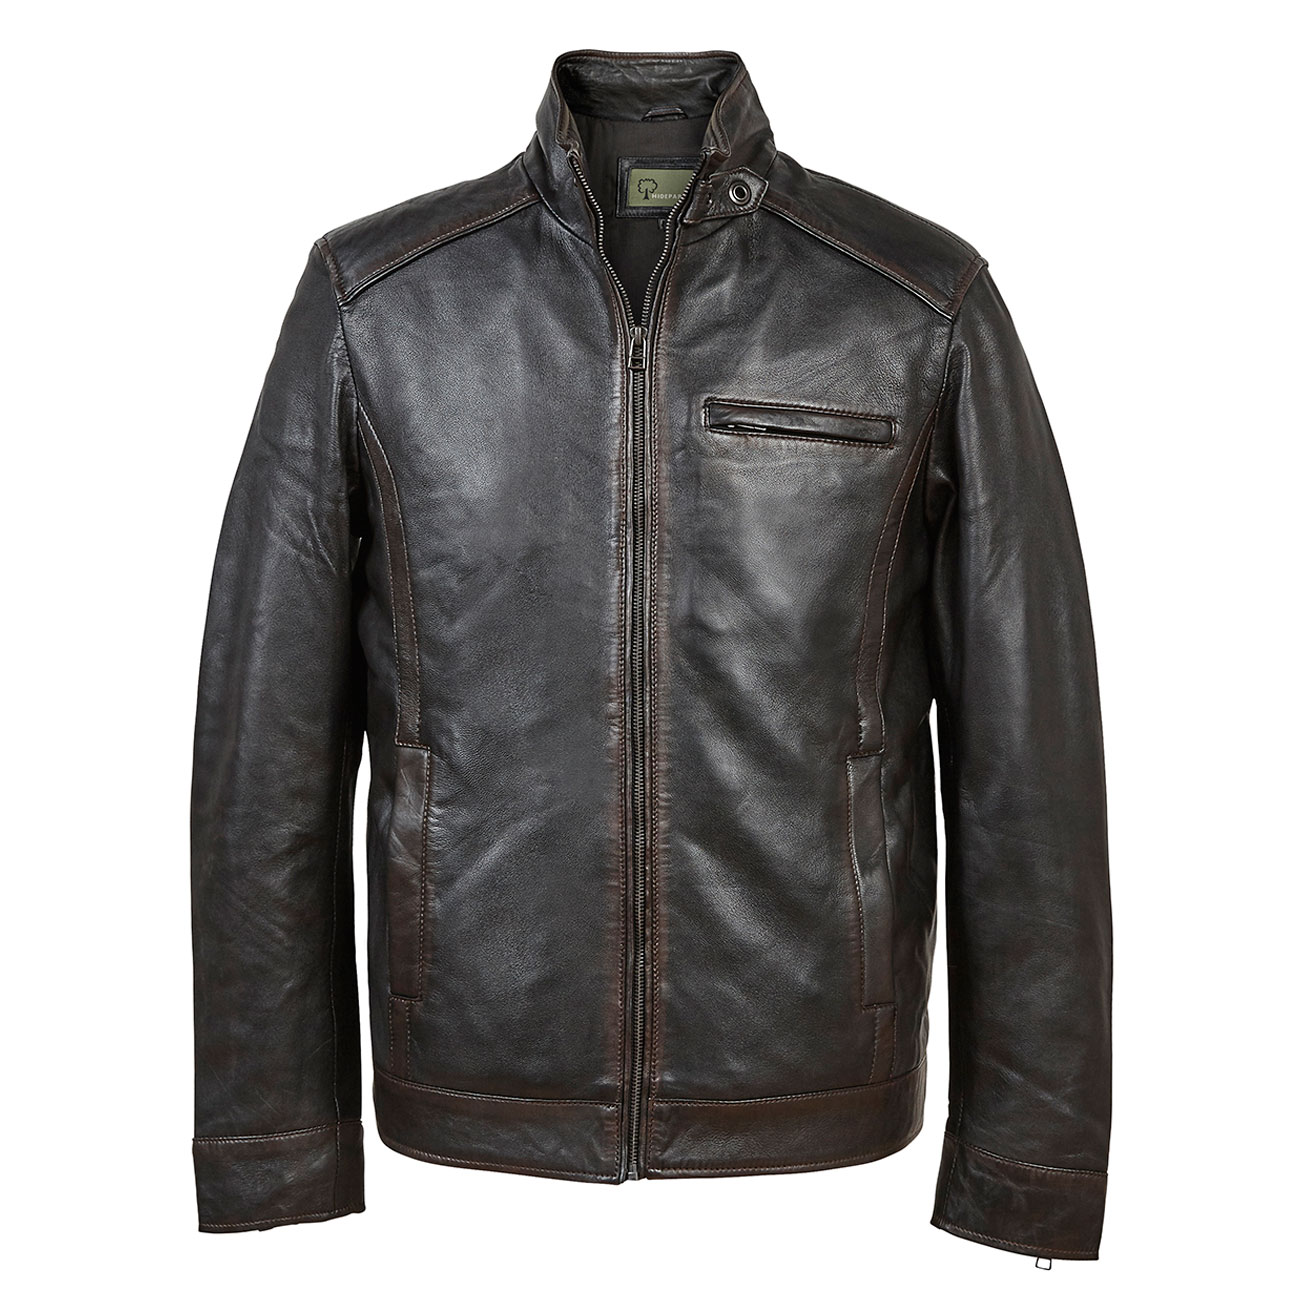 David: Men's Black Antique Leather Jacket